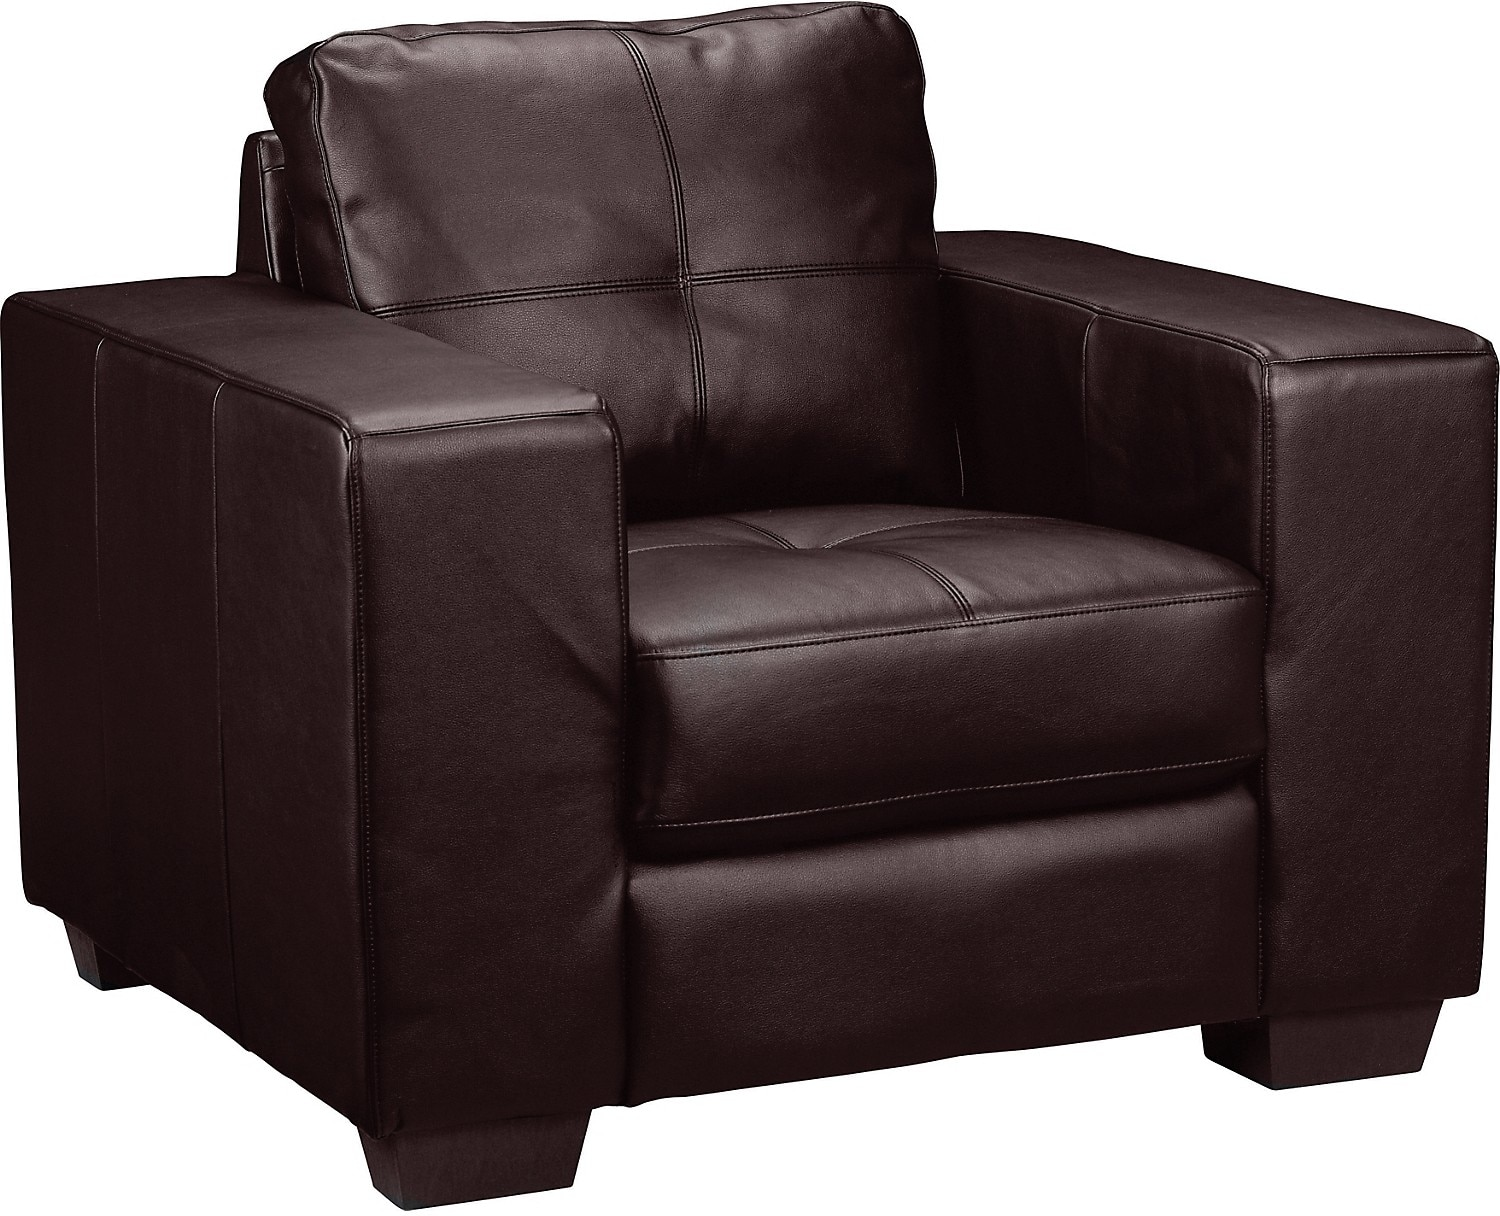 Living Room Furniture - Costa Brown Bonded Leather Chair